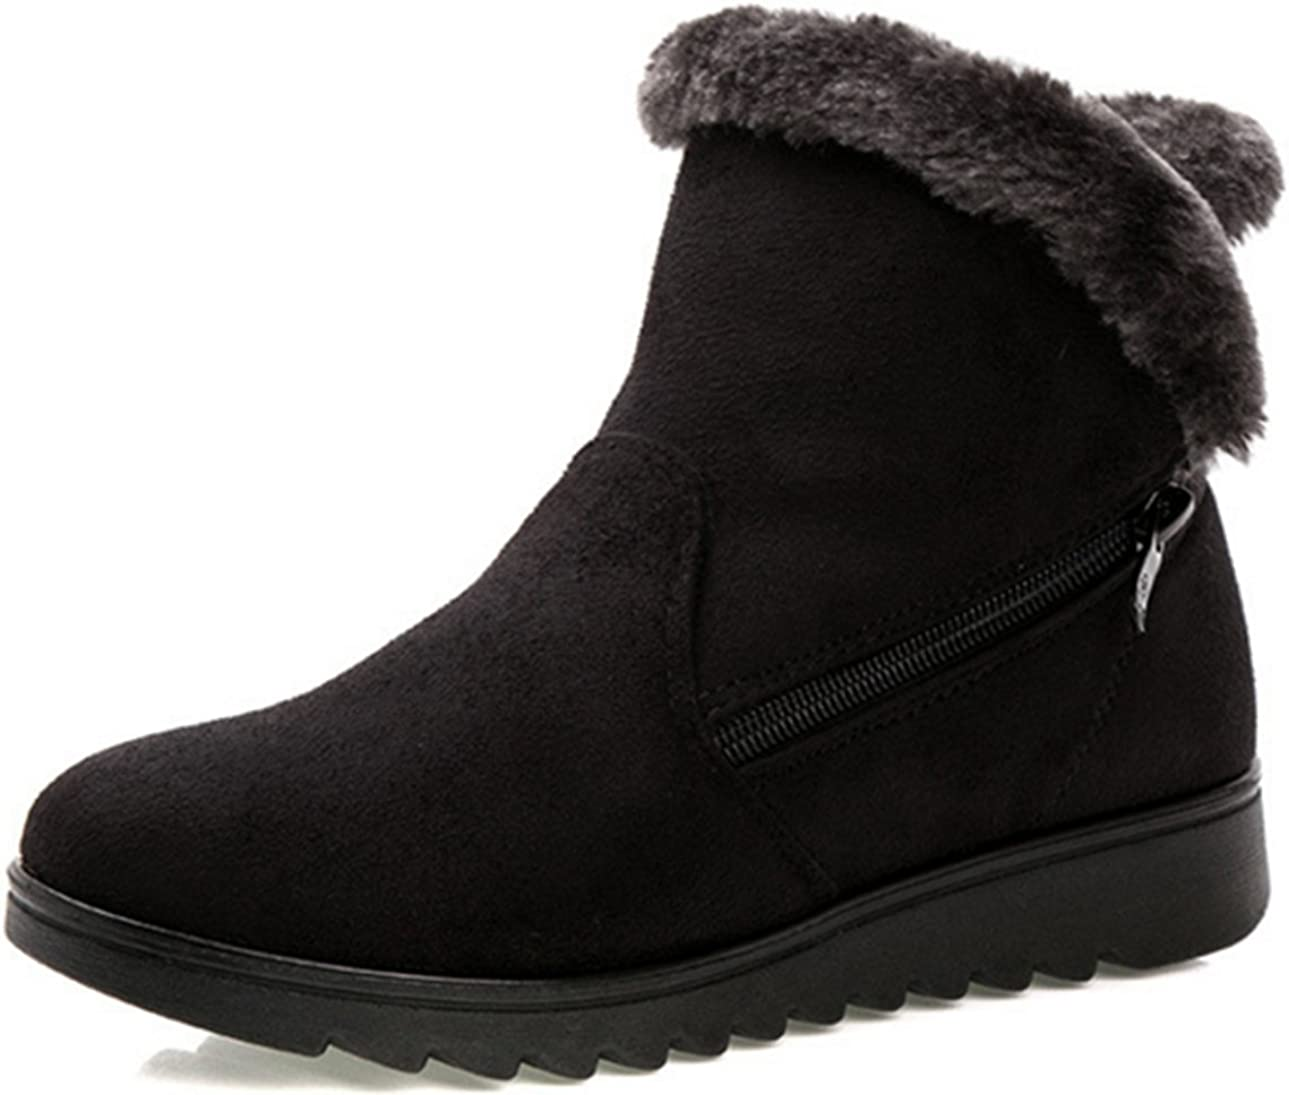 FHD Womens Cuffed Free shipping anywhere in the nation Fur Lined Side On Winte Flat Zipper High quality Ankle Pull